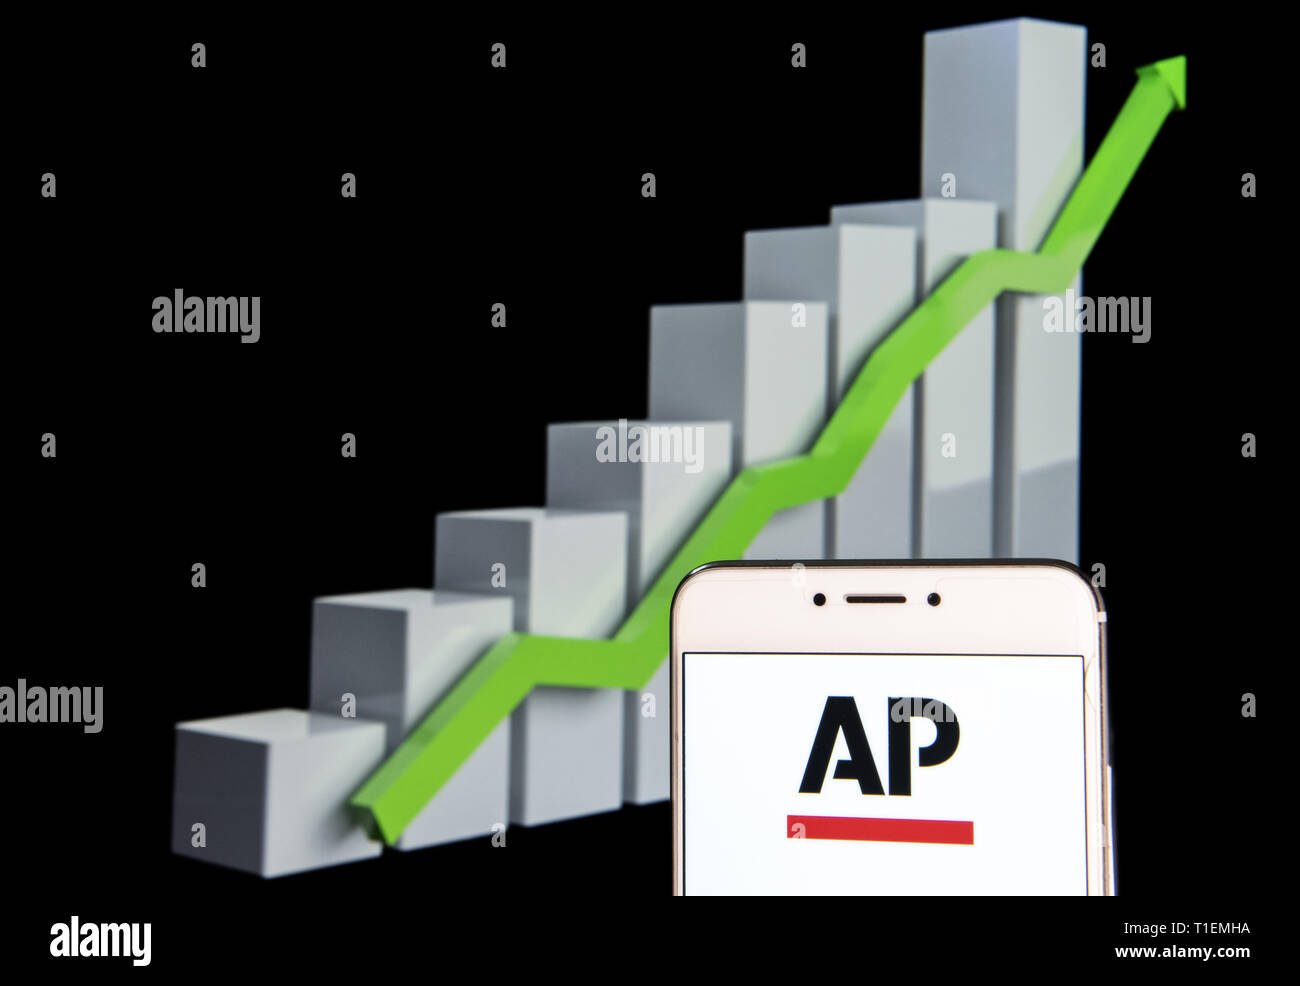 February 11, 2019 - Hong Kong - In this photo illustration a News agency Associated Press (AP) logo is seen on an android mobile device with an ascent growth chart in the background. (Credit Image: © Budrul Chukrut/SOPA Images via ZUMA Wire) - Stock Image